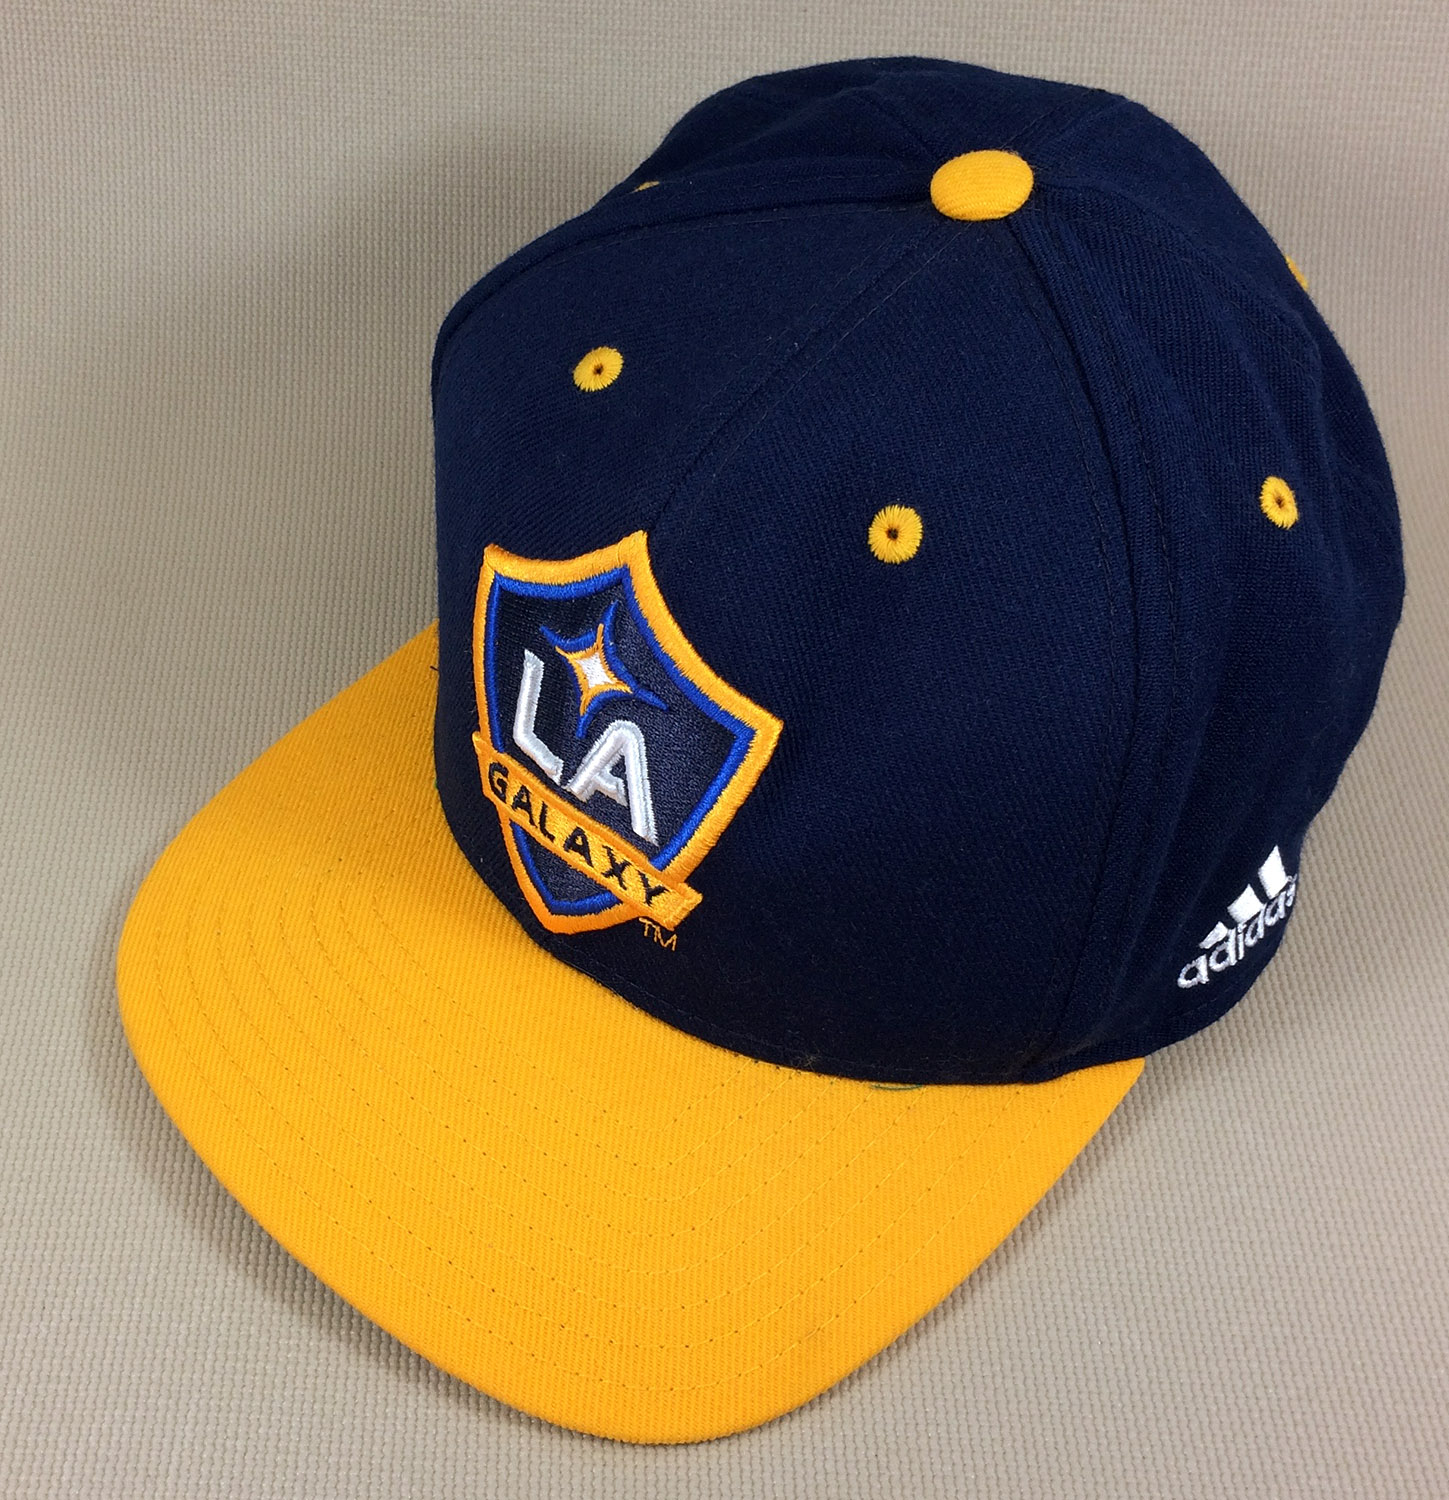 Los Angeles Galaxy Adidas Cap